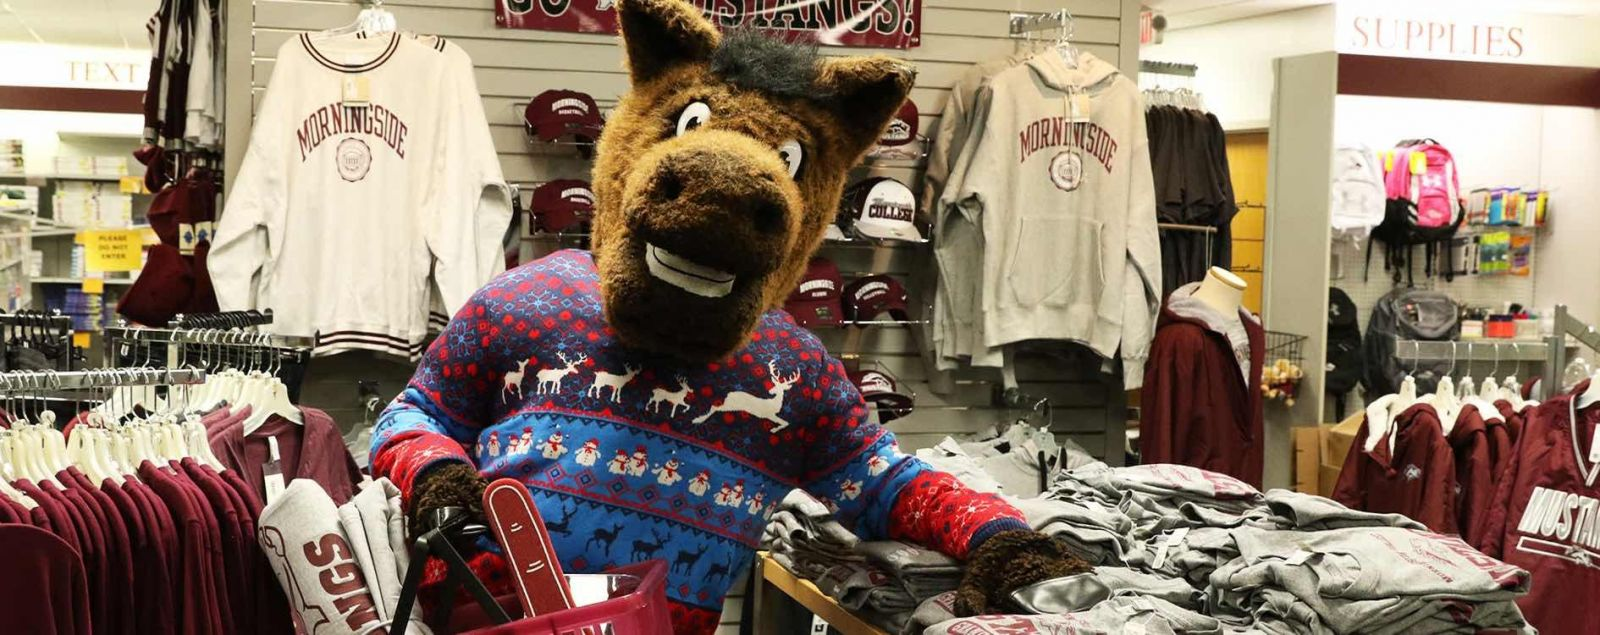 Monte the Mustang at the Morningside Bookstore